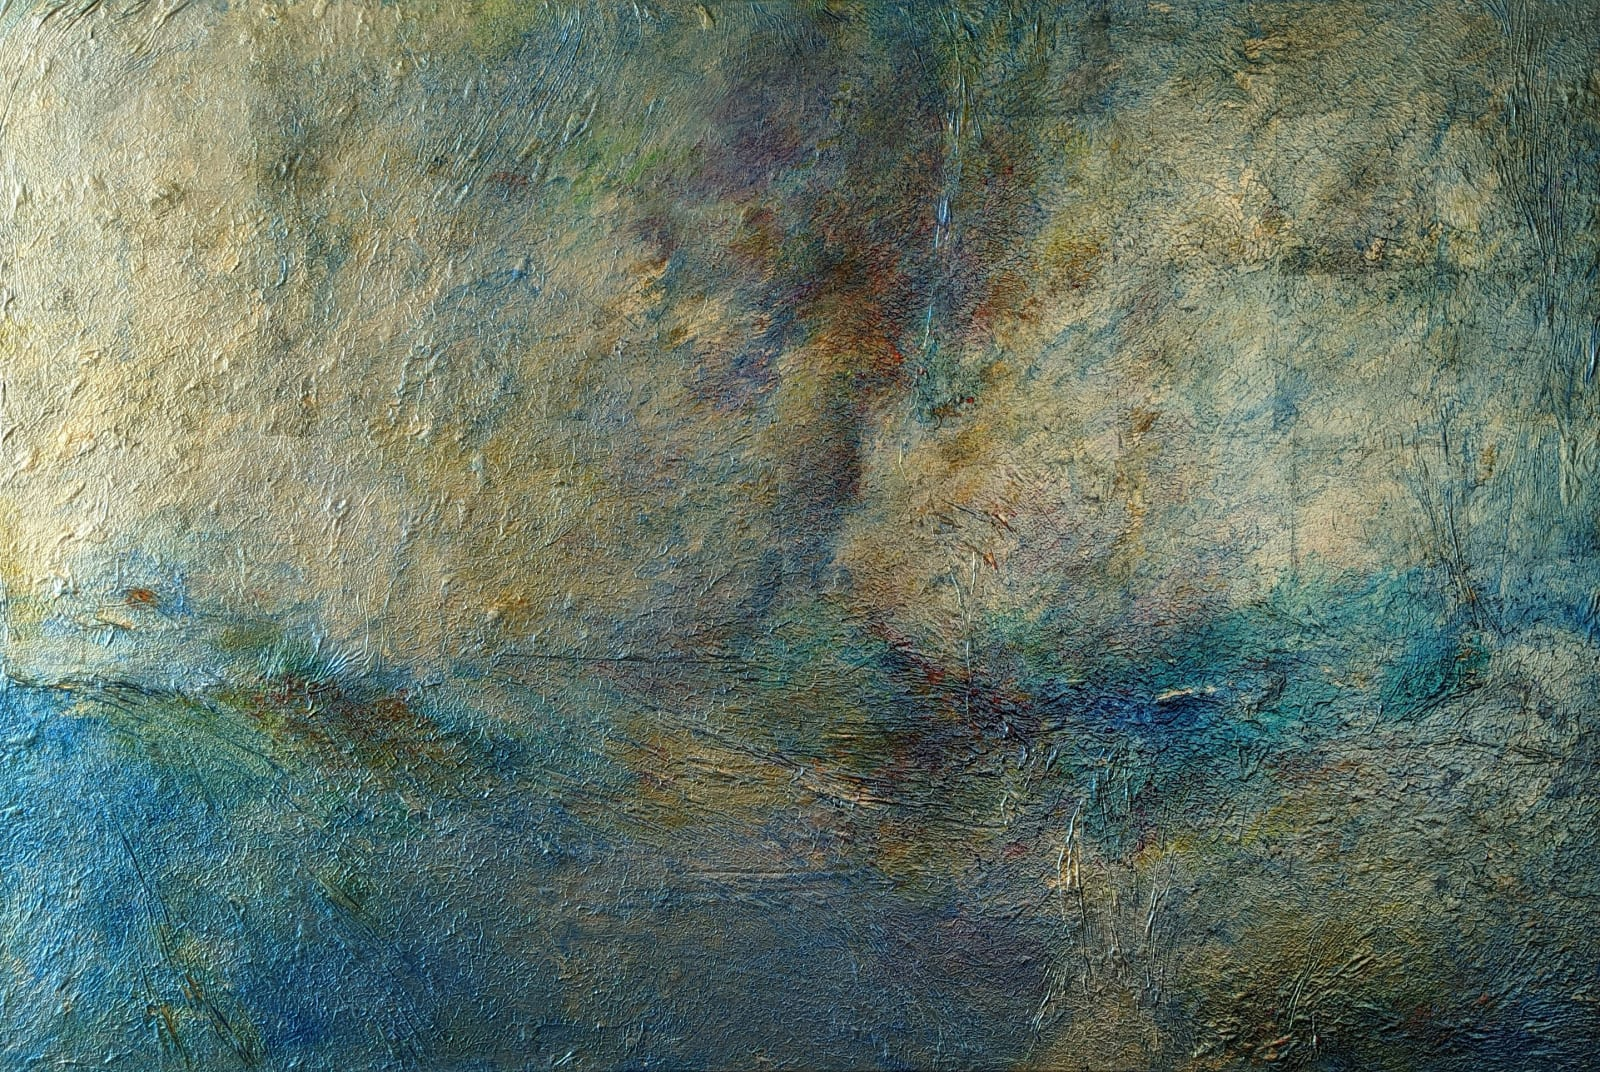 IAN LAWRENCE, After Turner